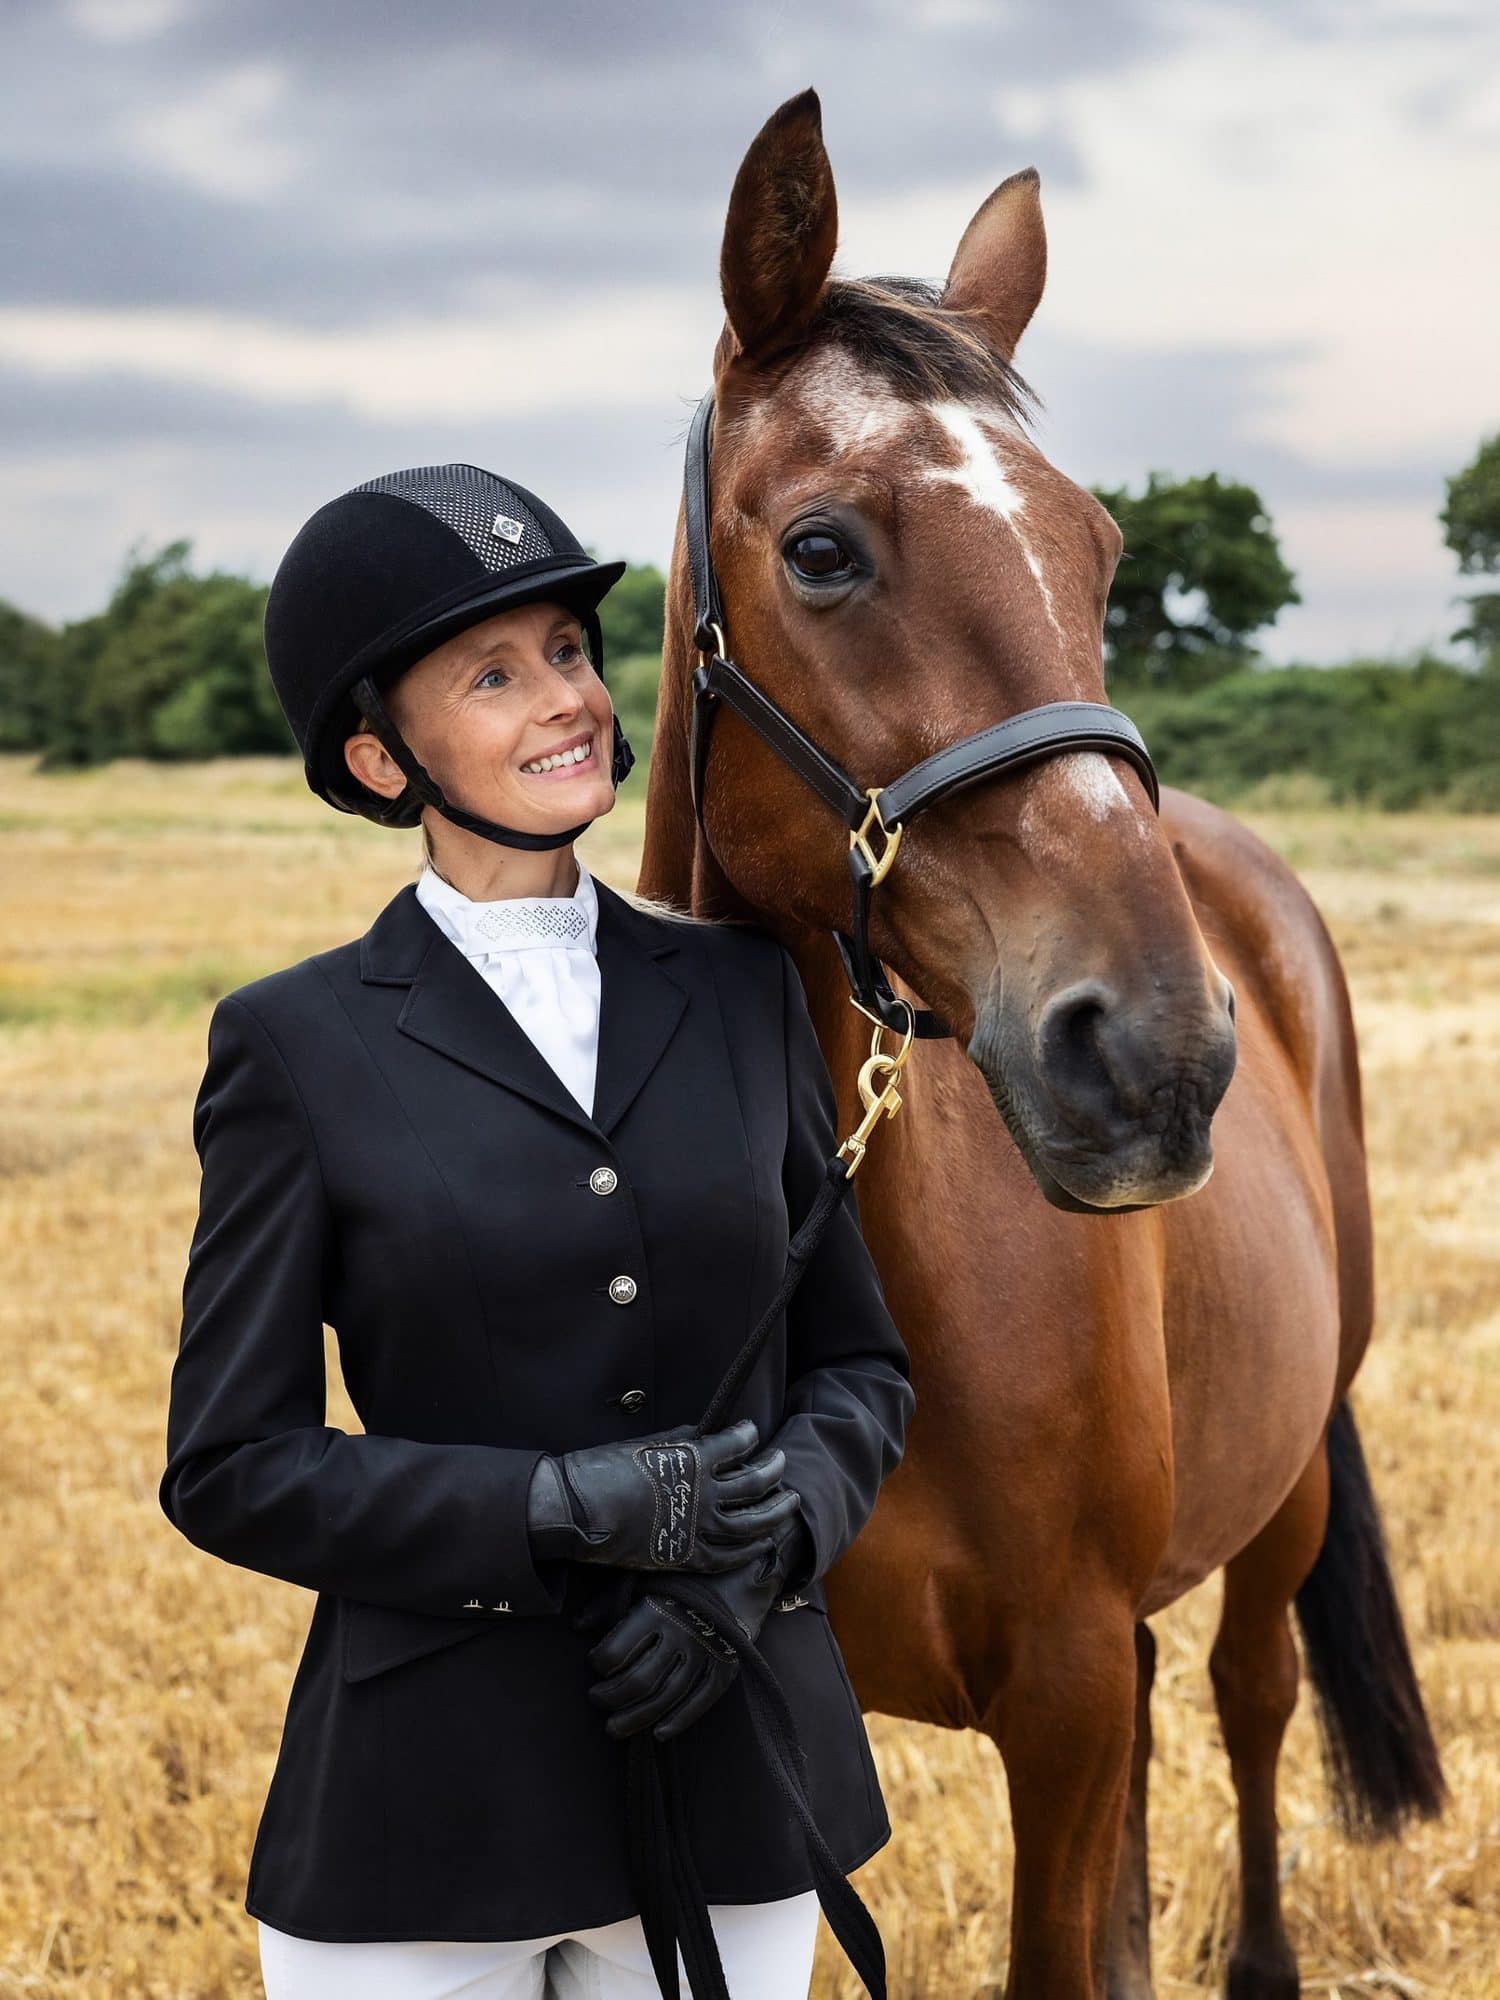 Horse and rider pose for a photograph in a stubble field in Suffolk countryside